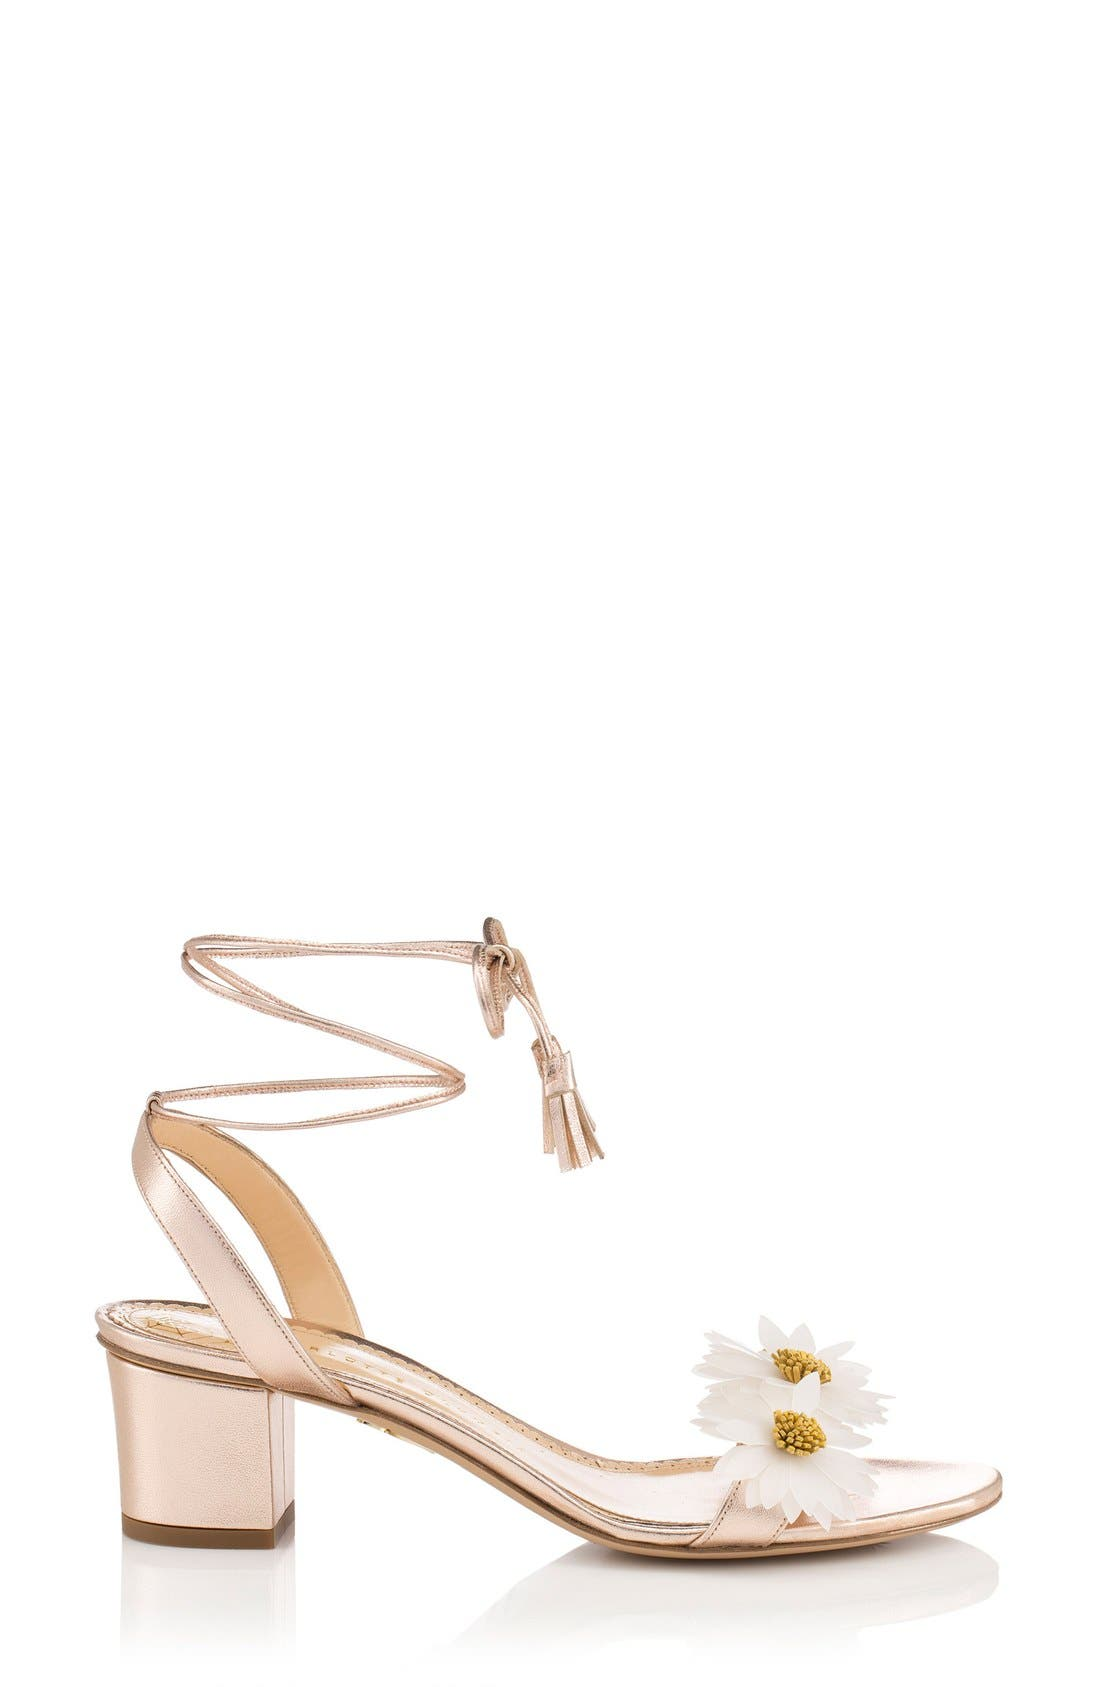 Main Image - Charlotte Olympia Tara Lace-Up Sandal (Women)